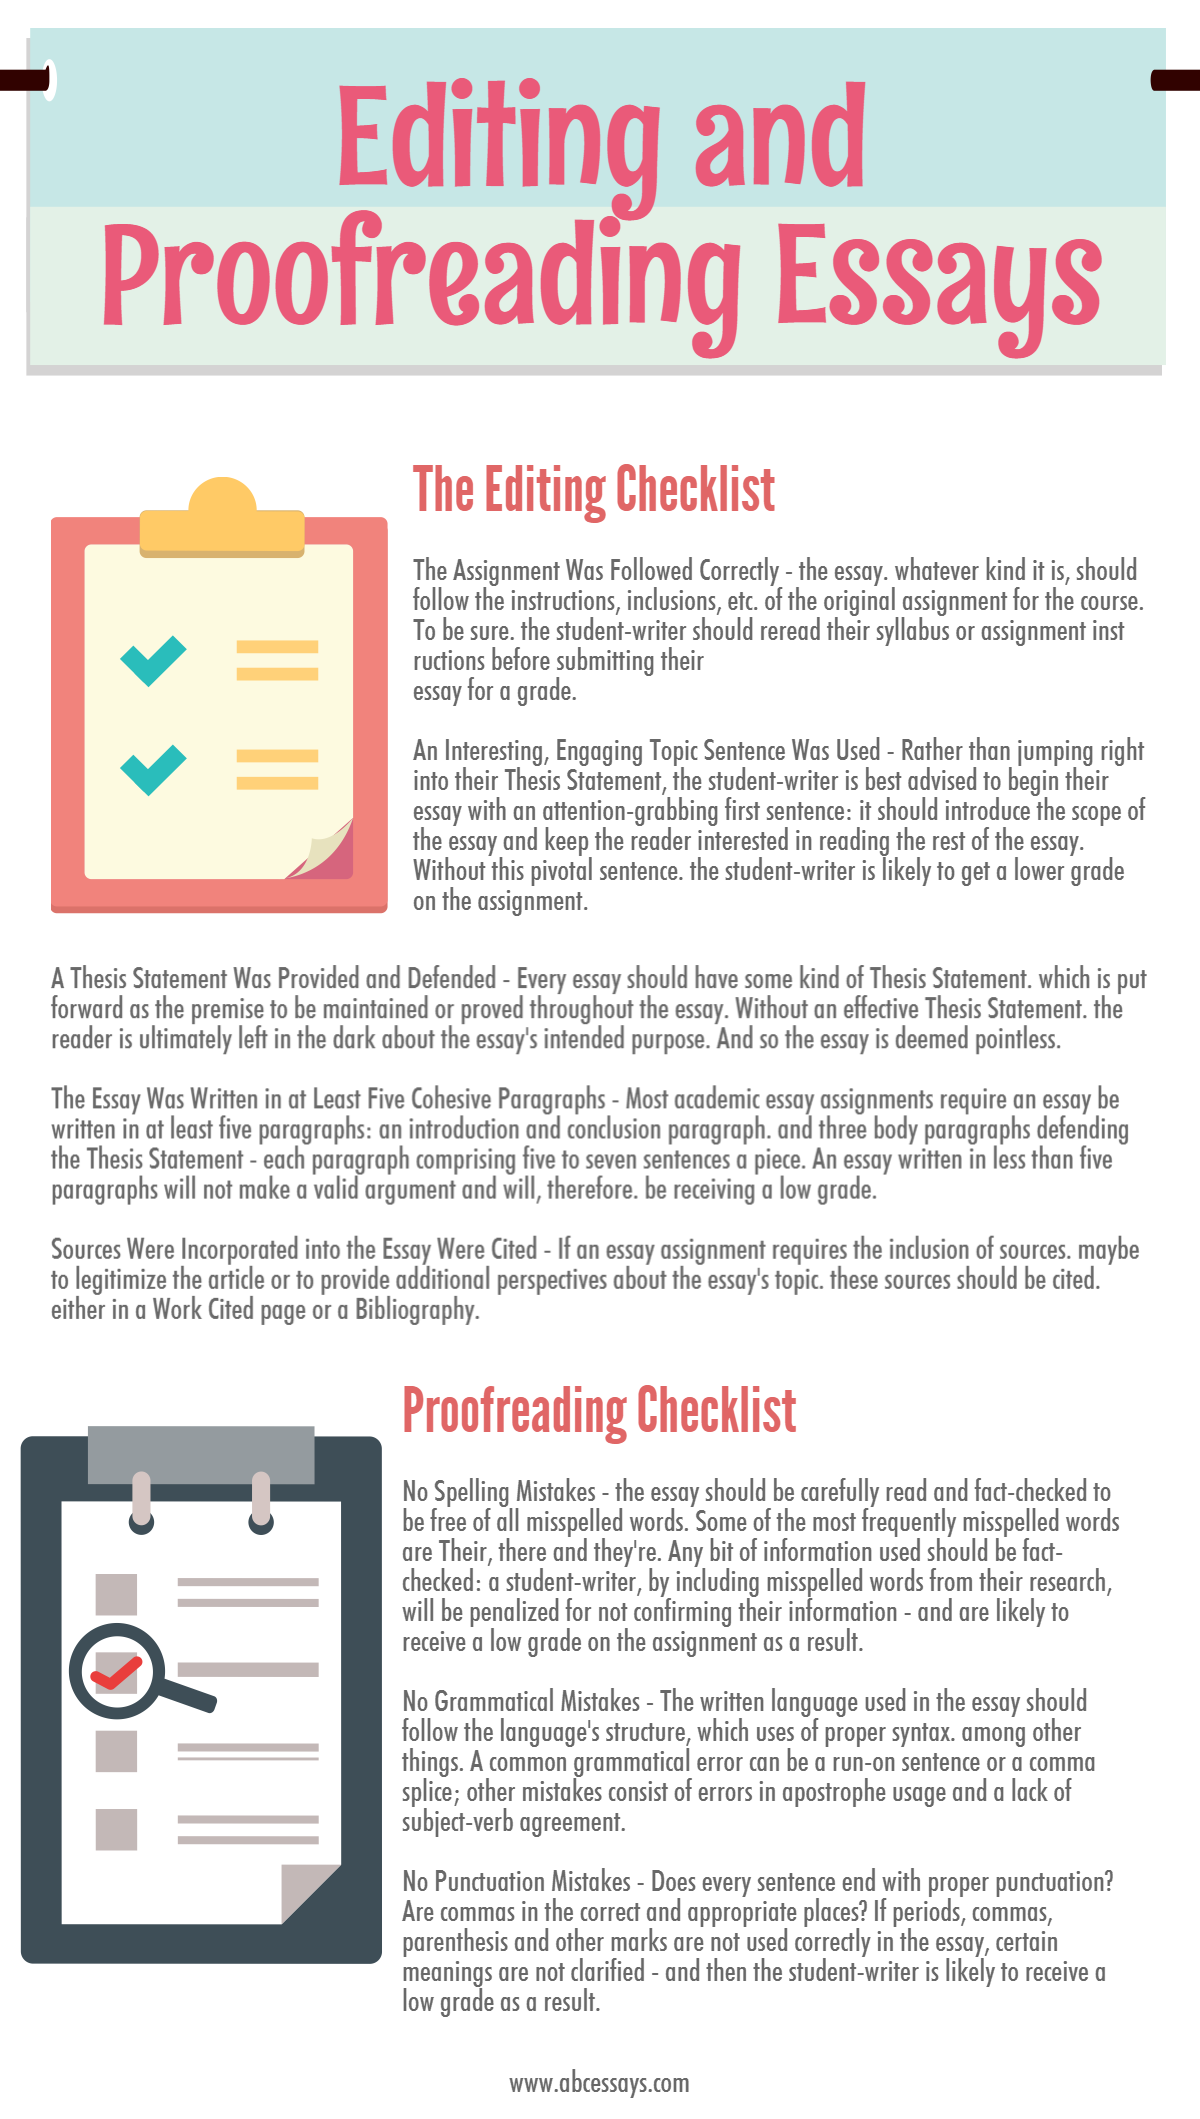 Essay Proofreading for Students